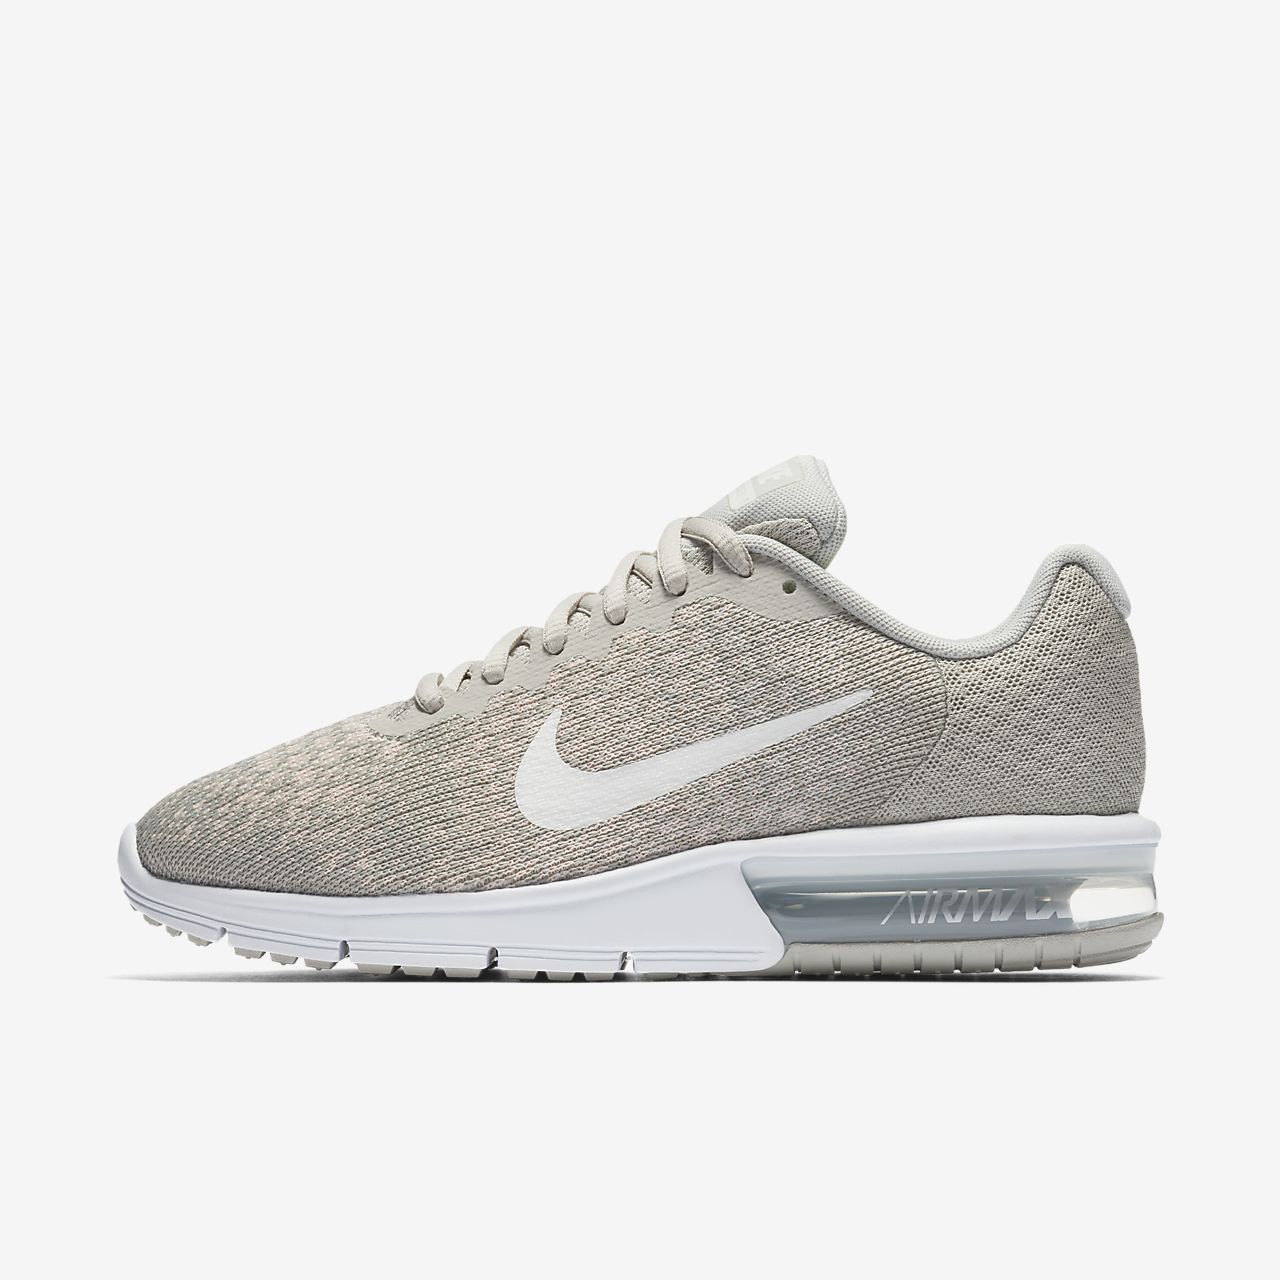 92f80132 Женские кроссовки Nike Air Max Sequent 2. Nike.com RU